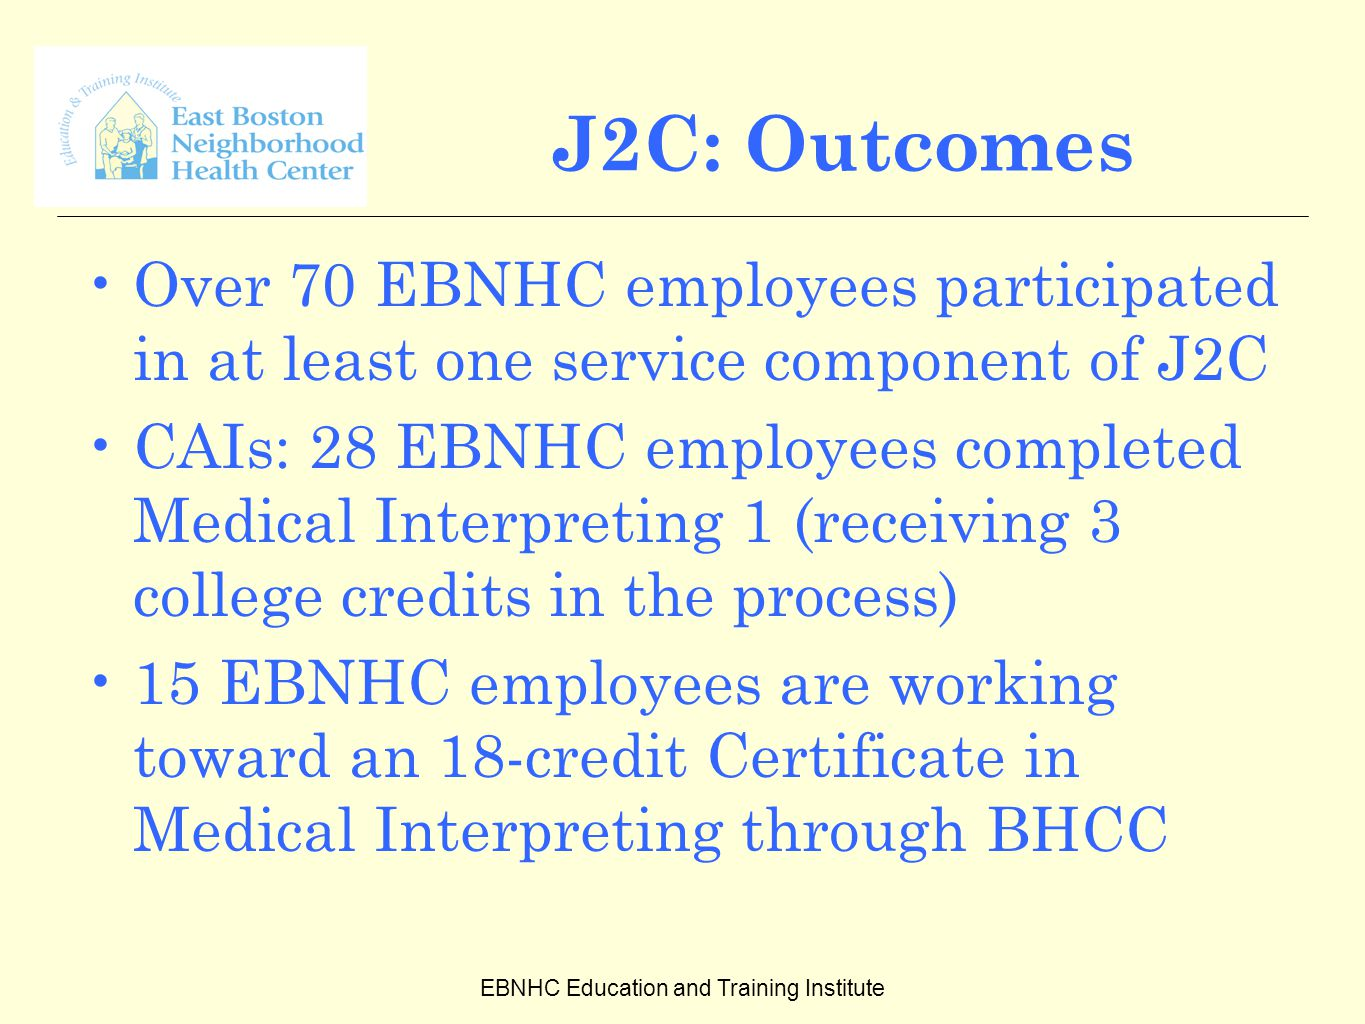 EBNHC Education and Training Institute J2C: Outcomes Over 70 EBNHC employees participated in at least one service component of J2C CAIs: 28 EBNHC employees completed Medical Interpreting 1 (receiving 3 college credits in the process) 15 EBNHC employees are working toward an 18-credit Certificate in Medical Interpreting through BHCC